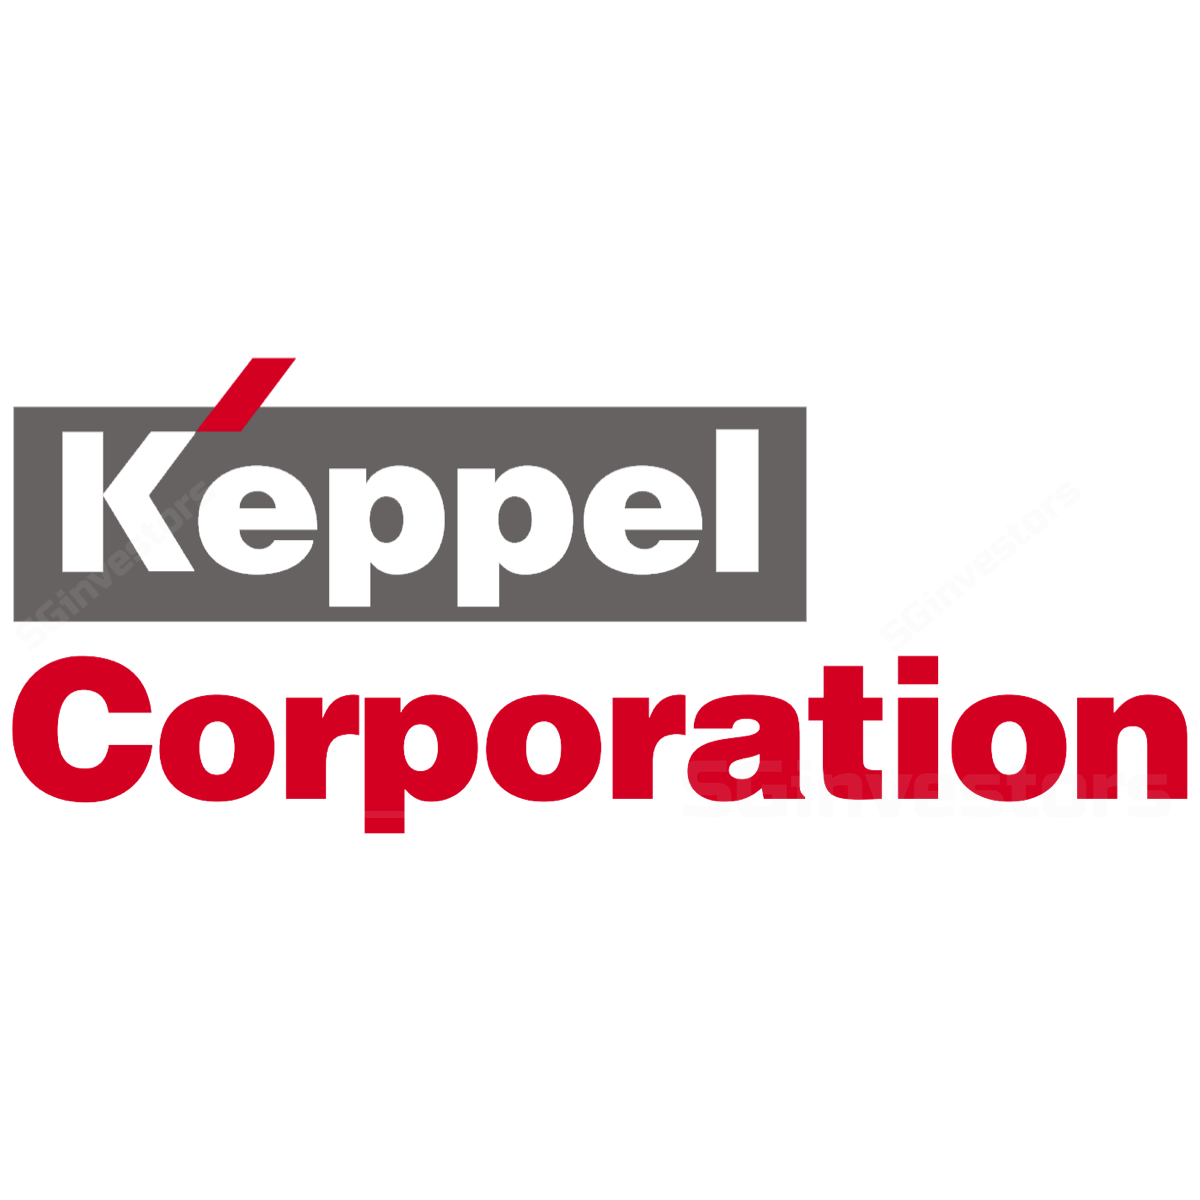 Keppel Corporation - CIMB Research 2016-12-05: Recovery priced in